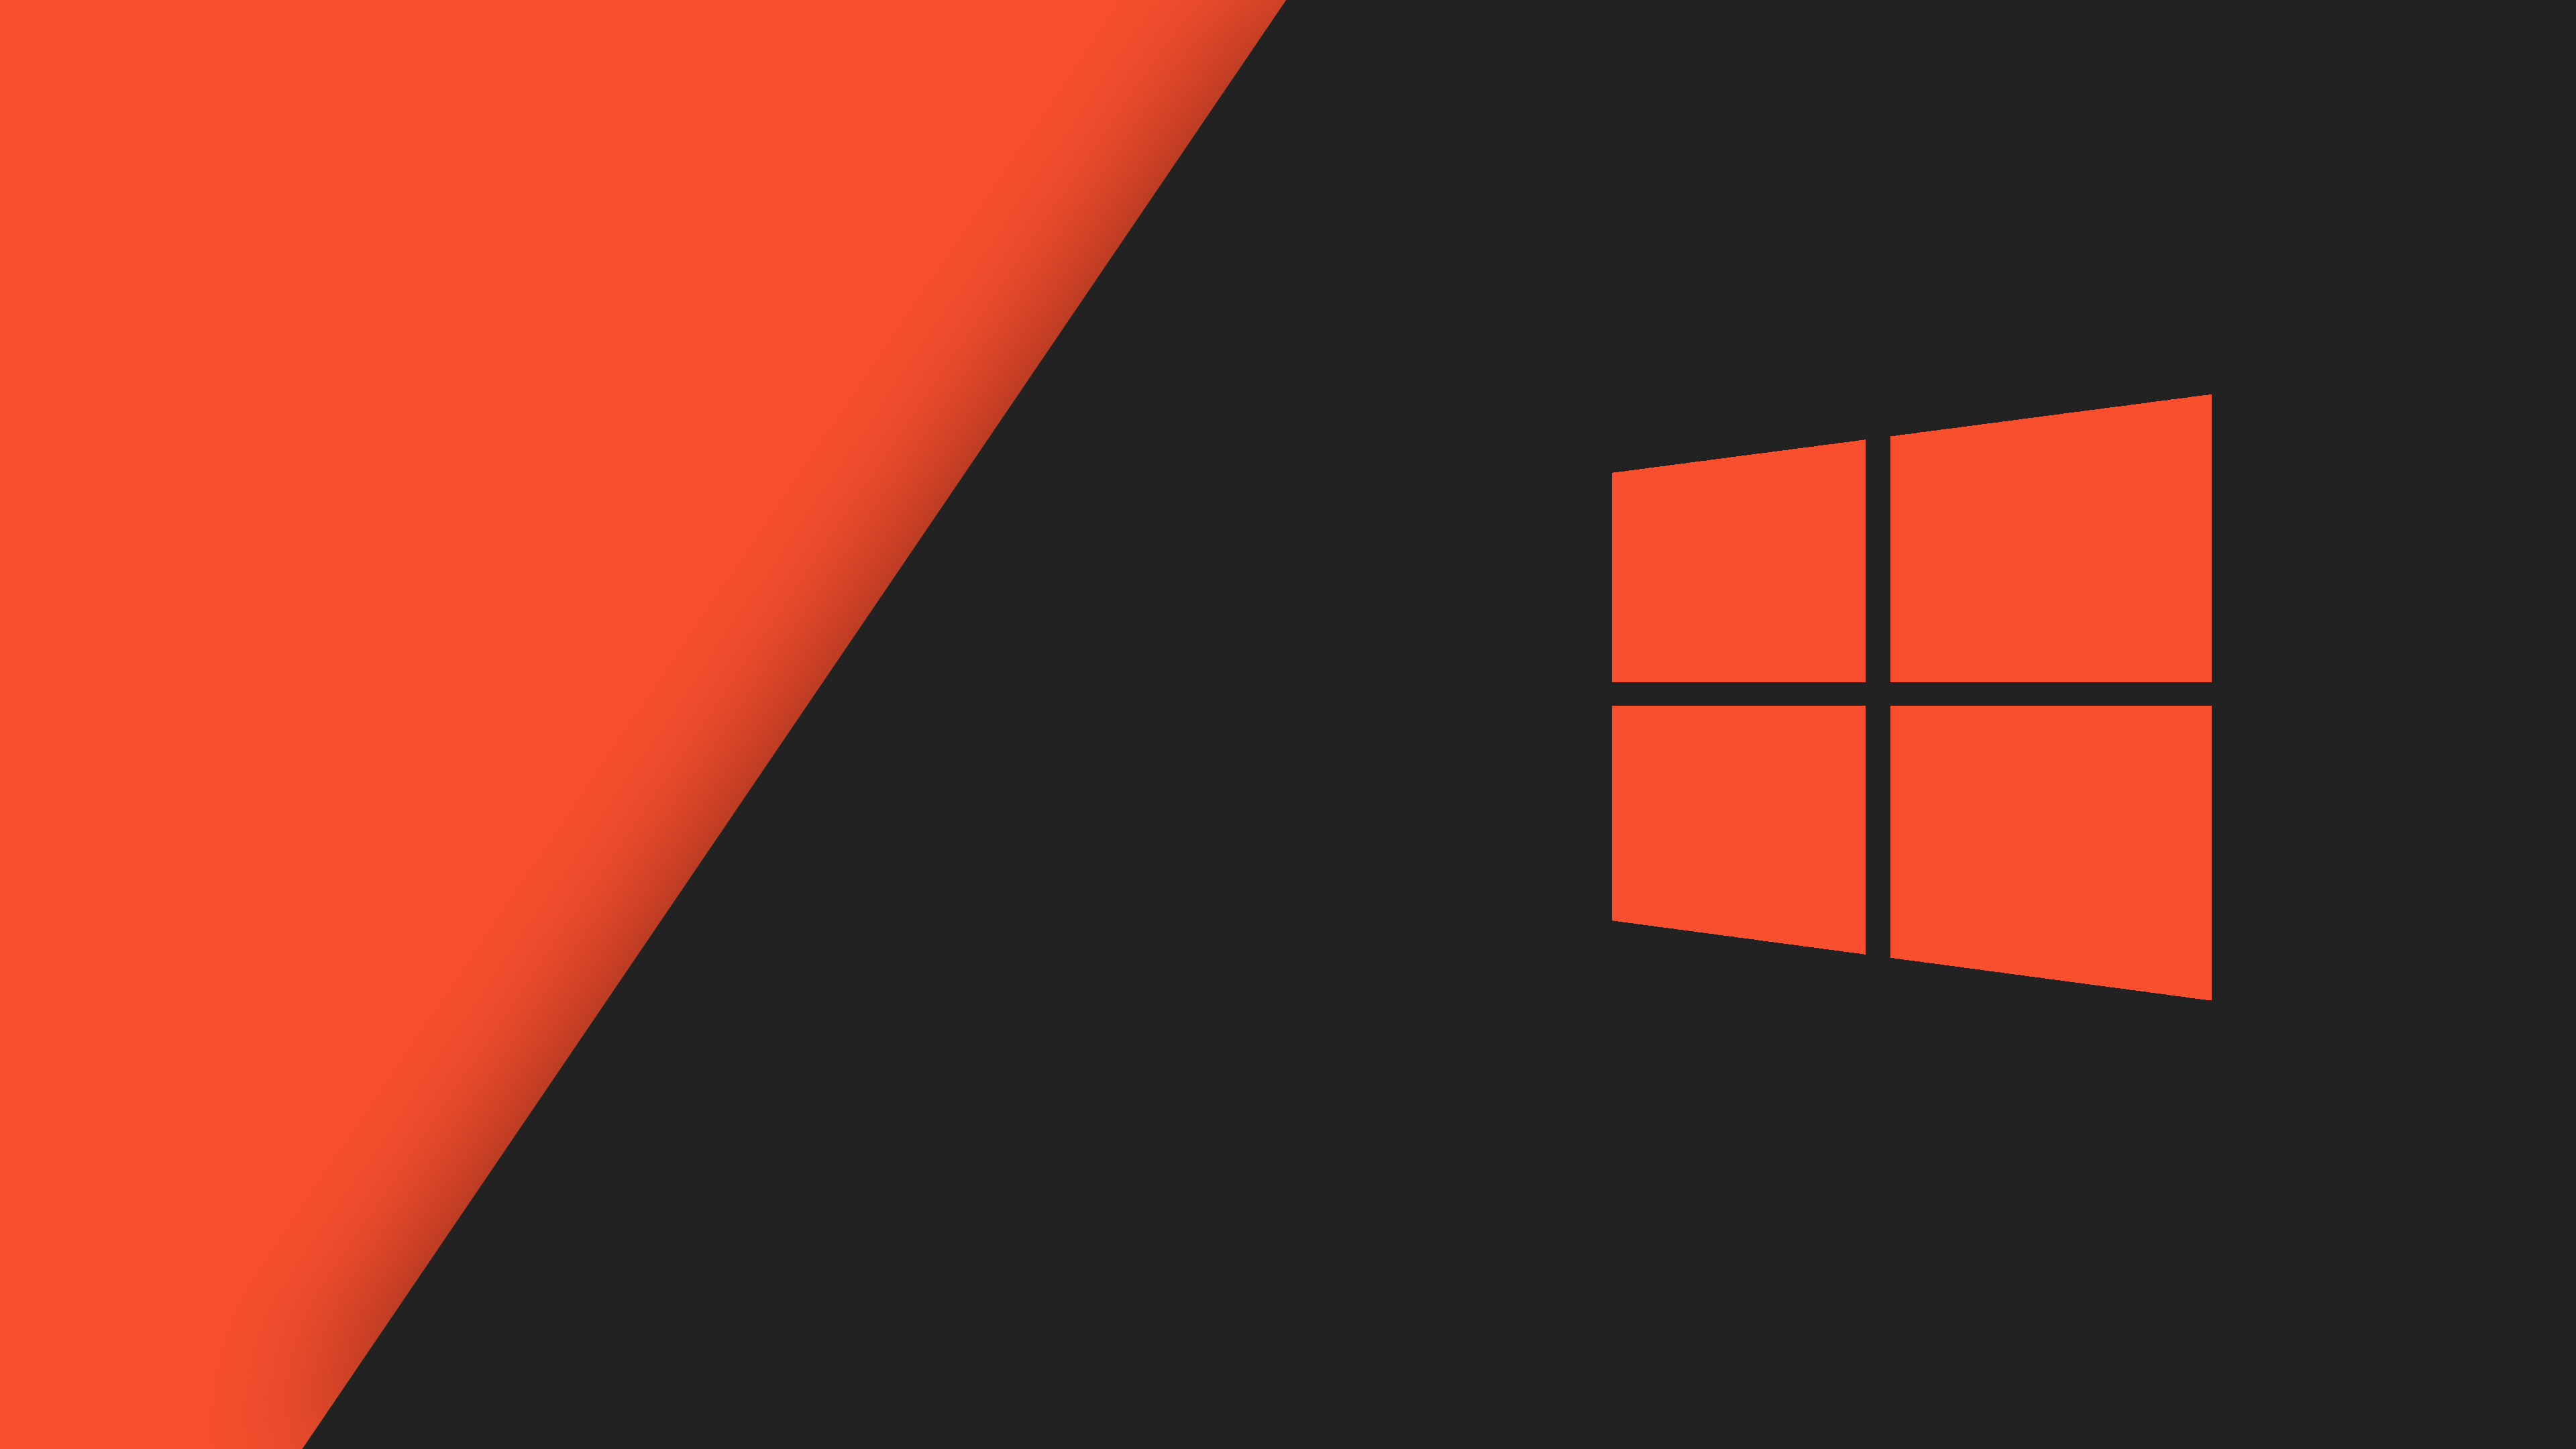 Windows 10 wallpaper red grey by spectalfrag on deviantart for Red and grey wallpaper